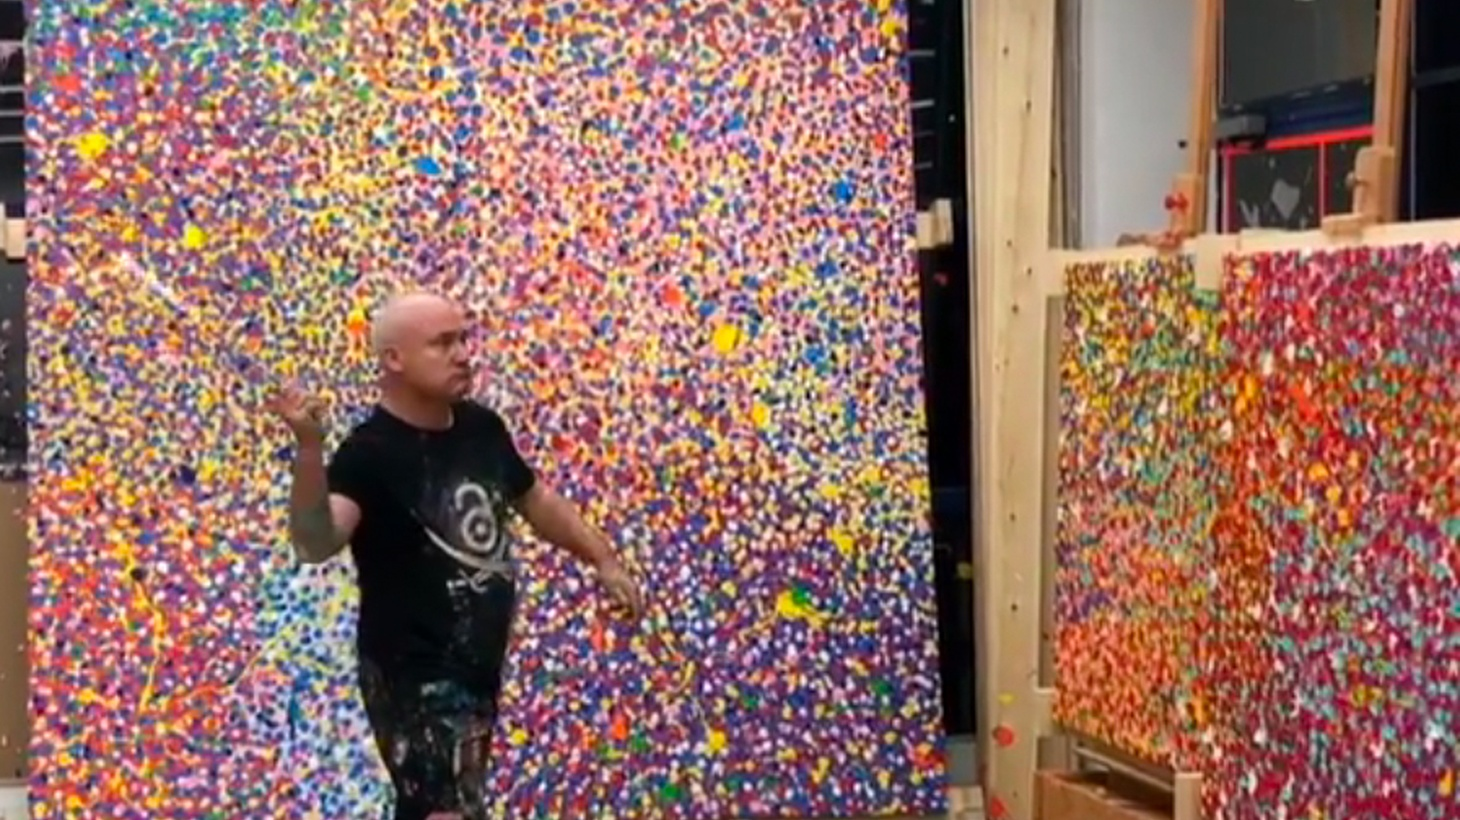 Edward Goldman talks about an exhibition at Gagosian by one of the most successful contemporary artists, Damien Hirst.